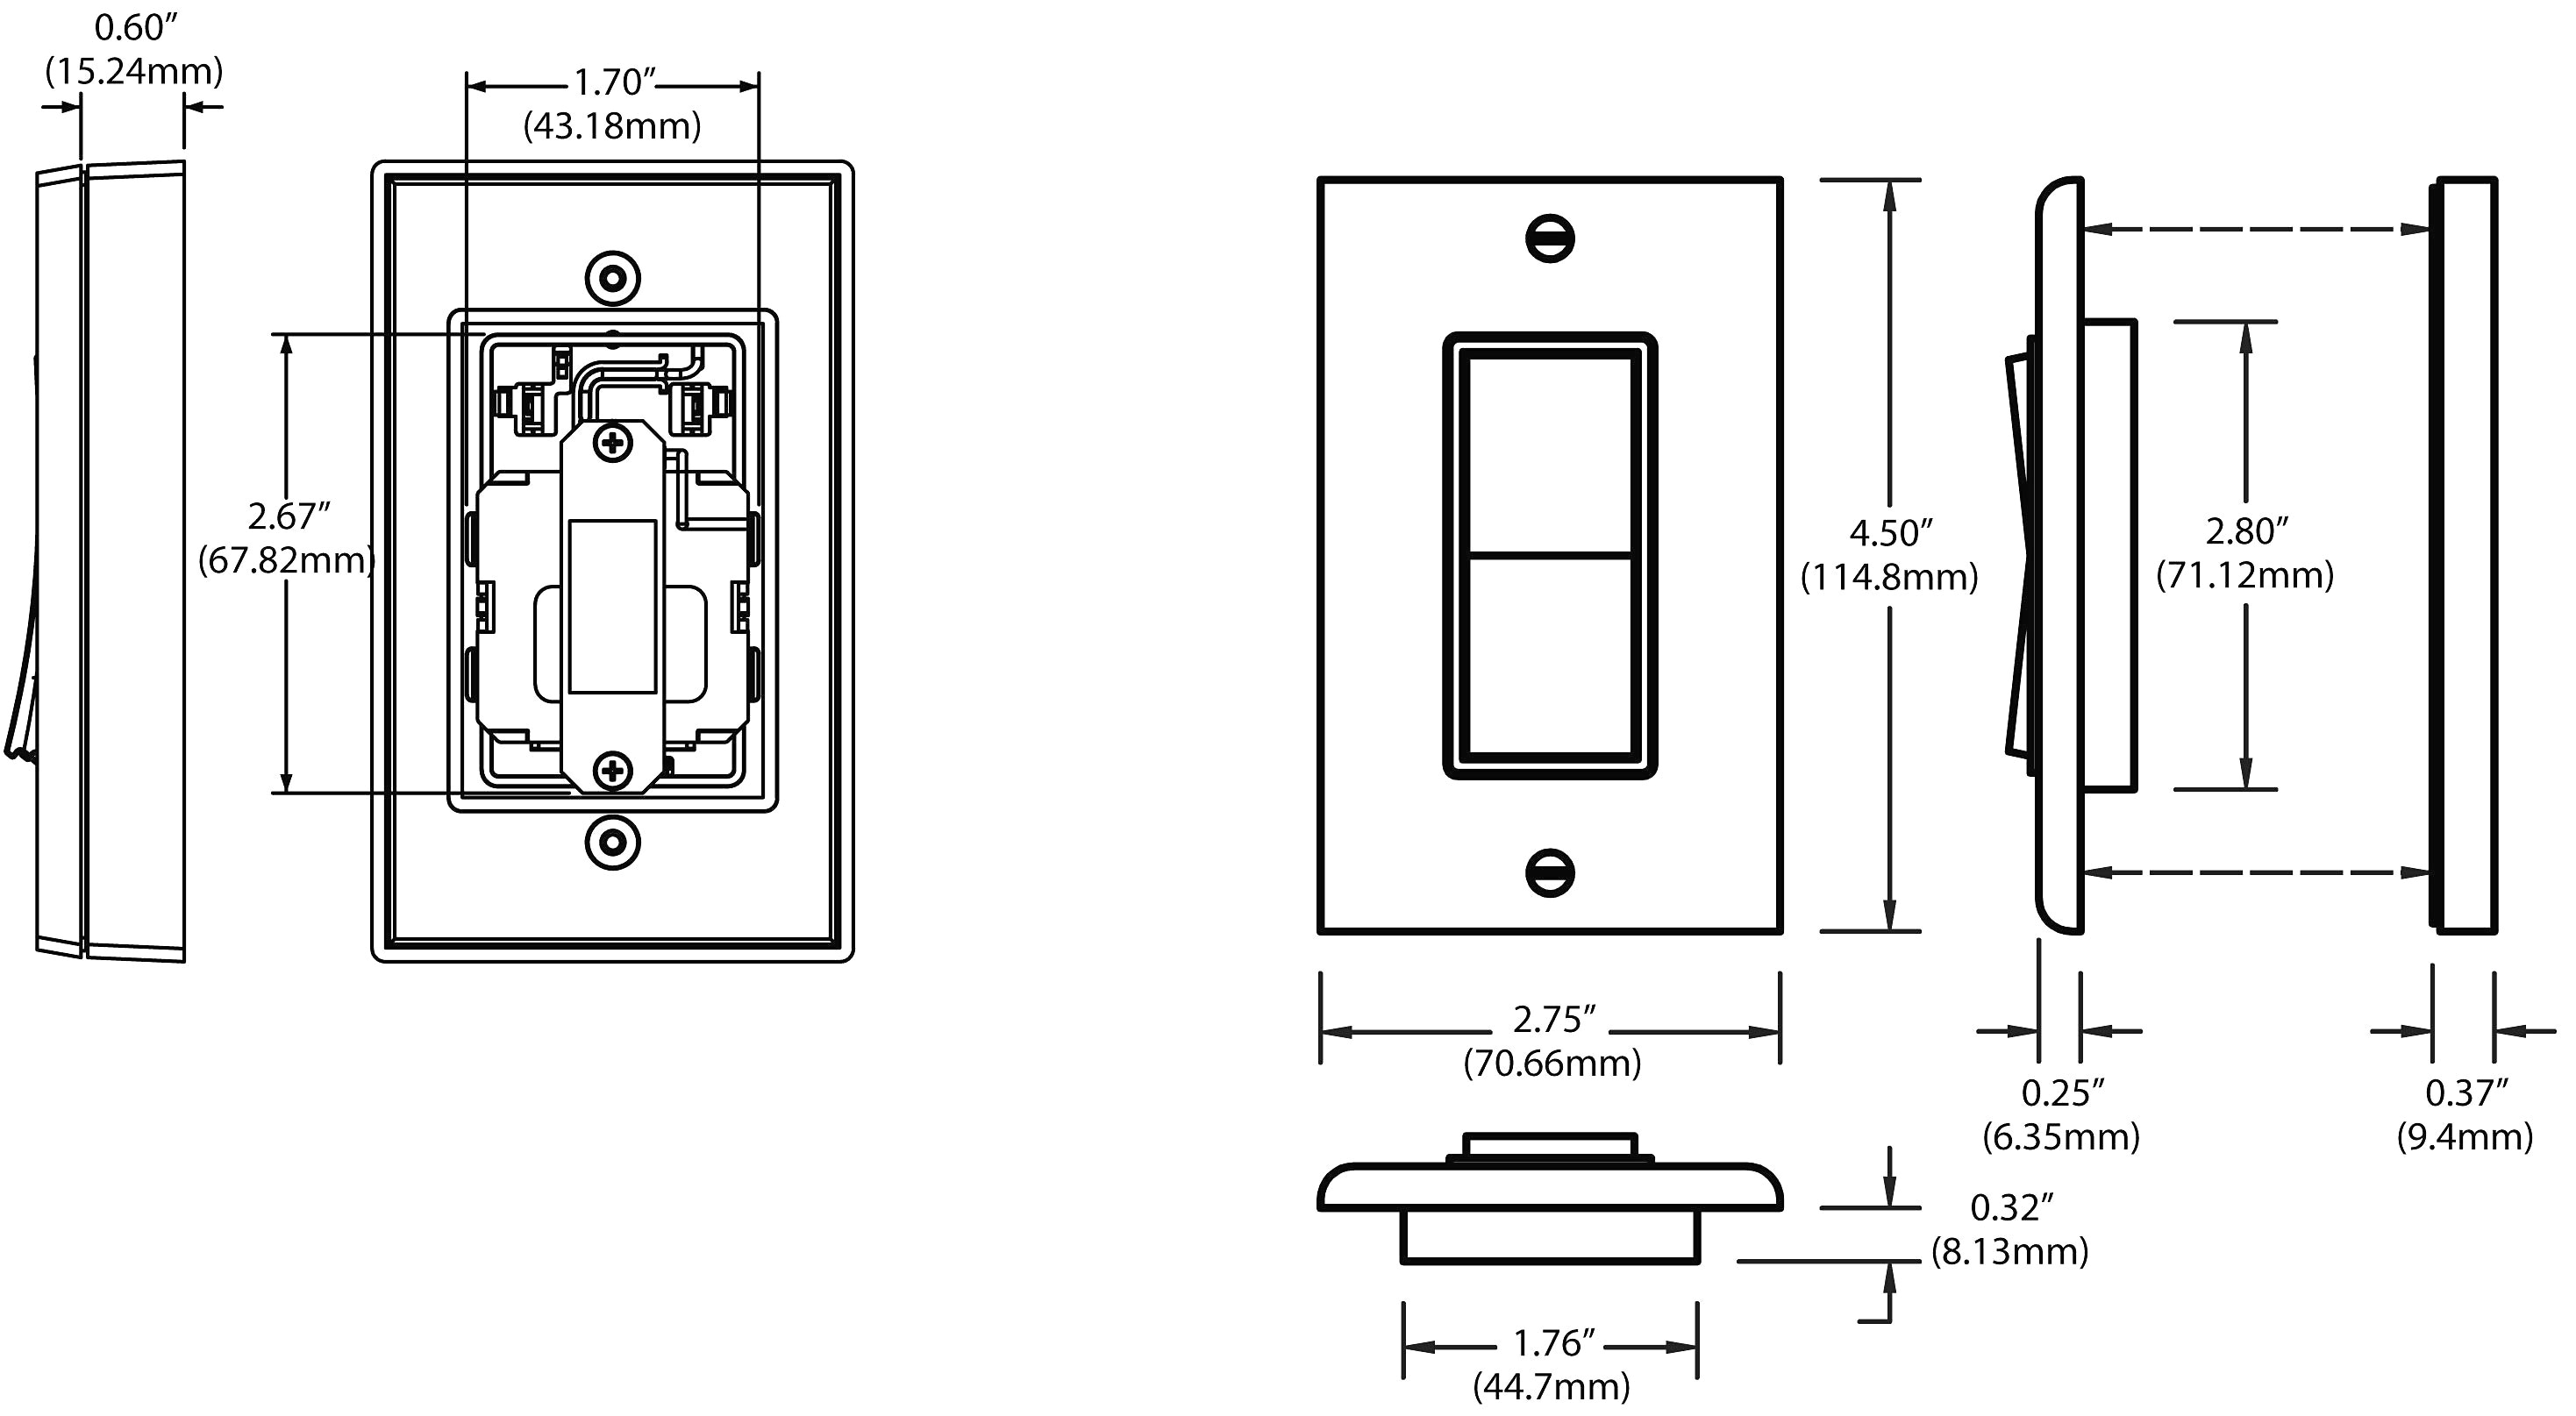 wiring diagram leviton decora light dimmer switch valid double pole beautiful 3 way in